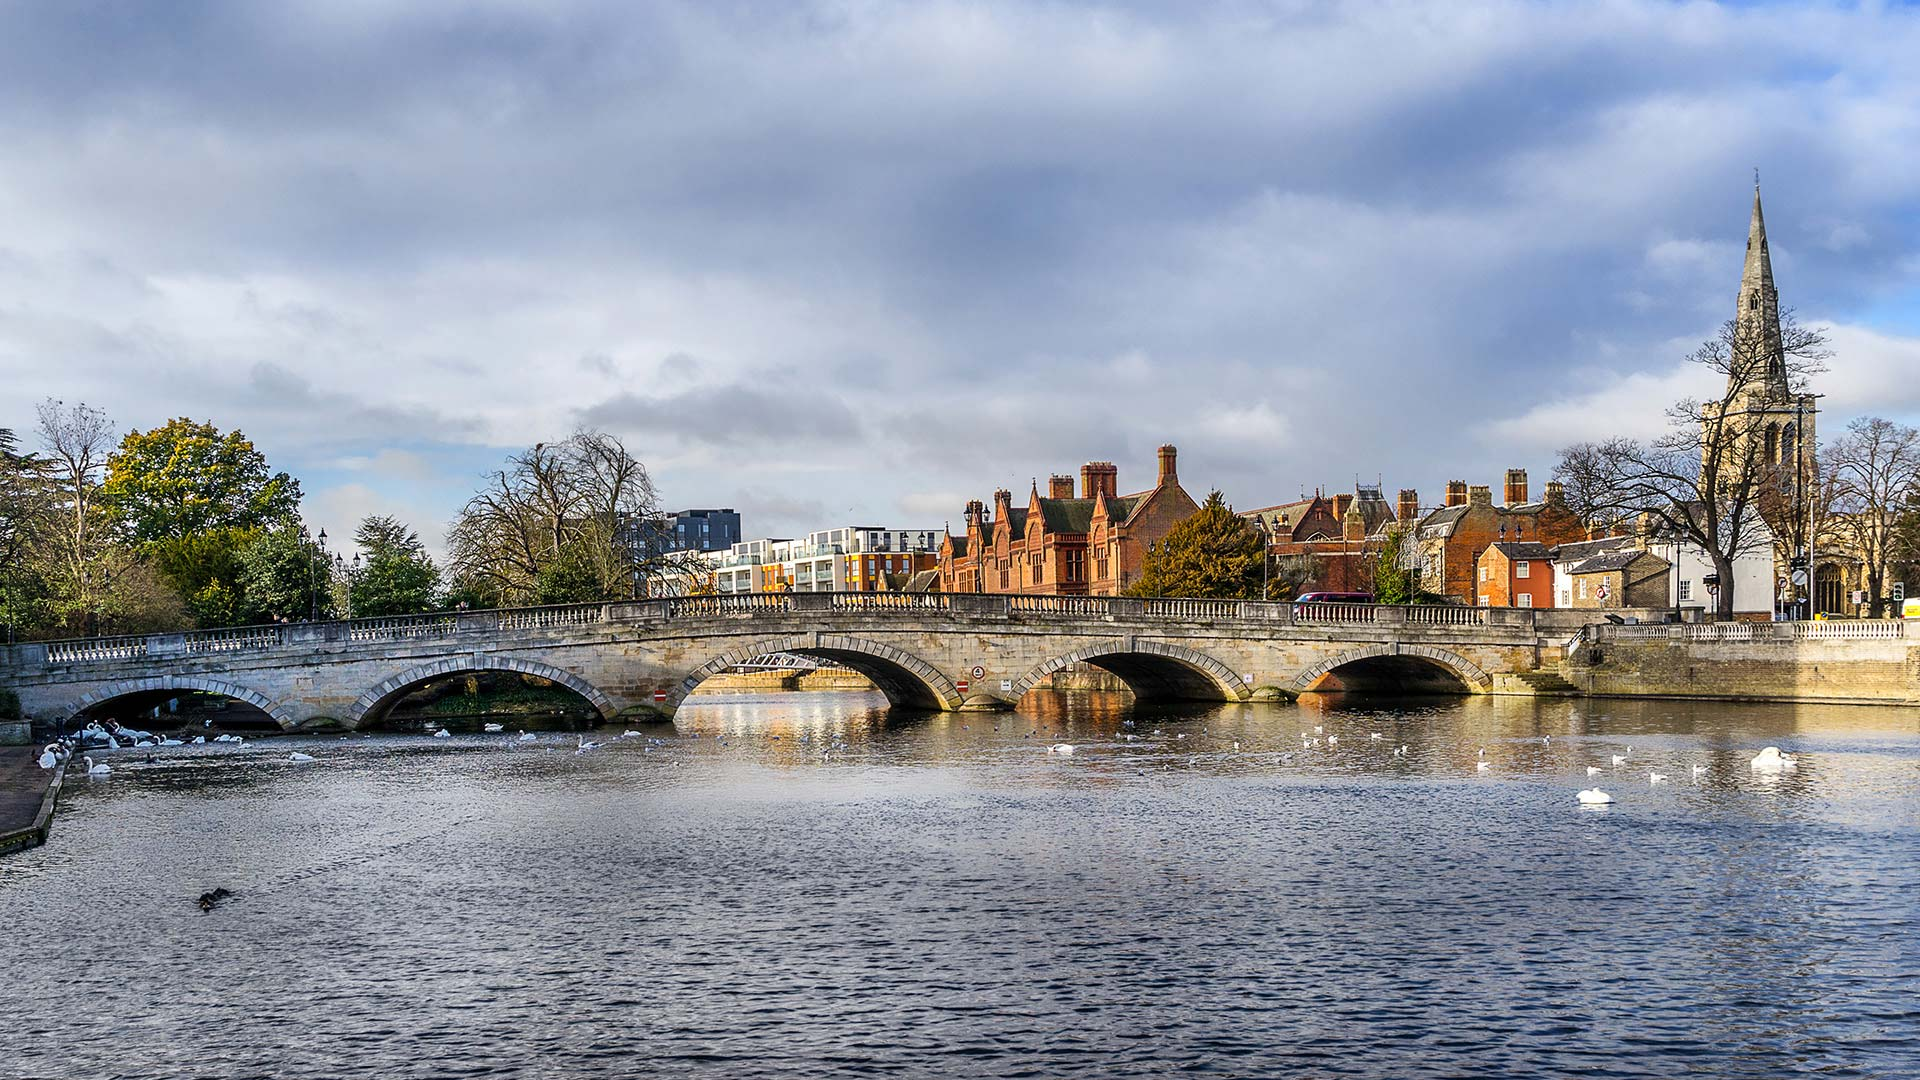 Panorama to illustrate dating in bedford